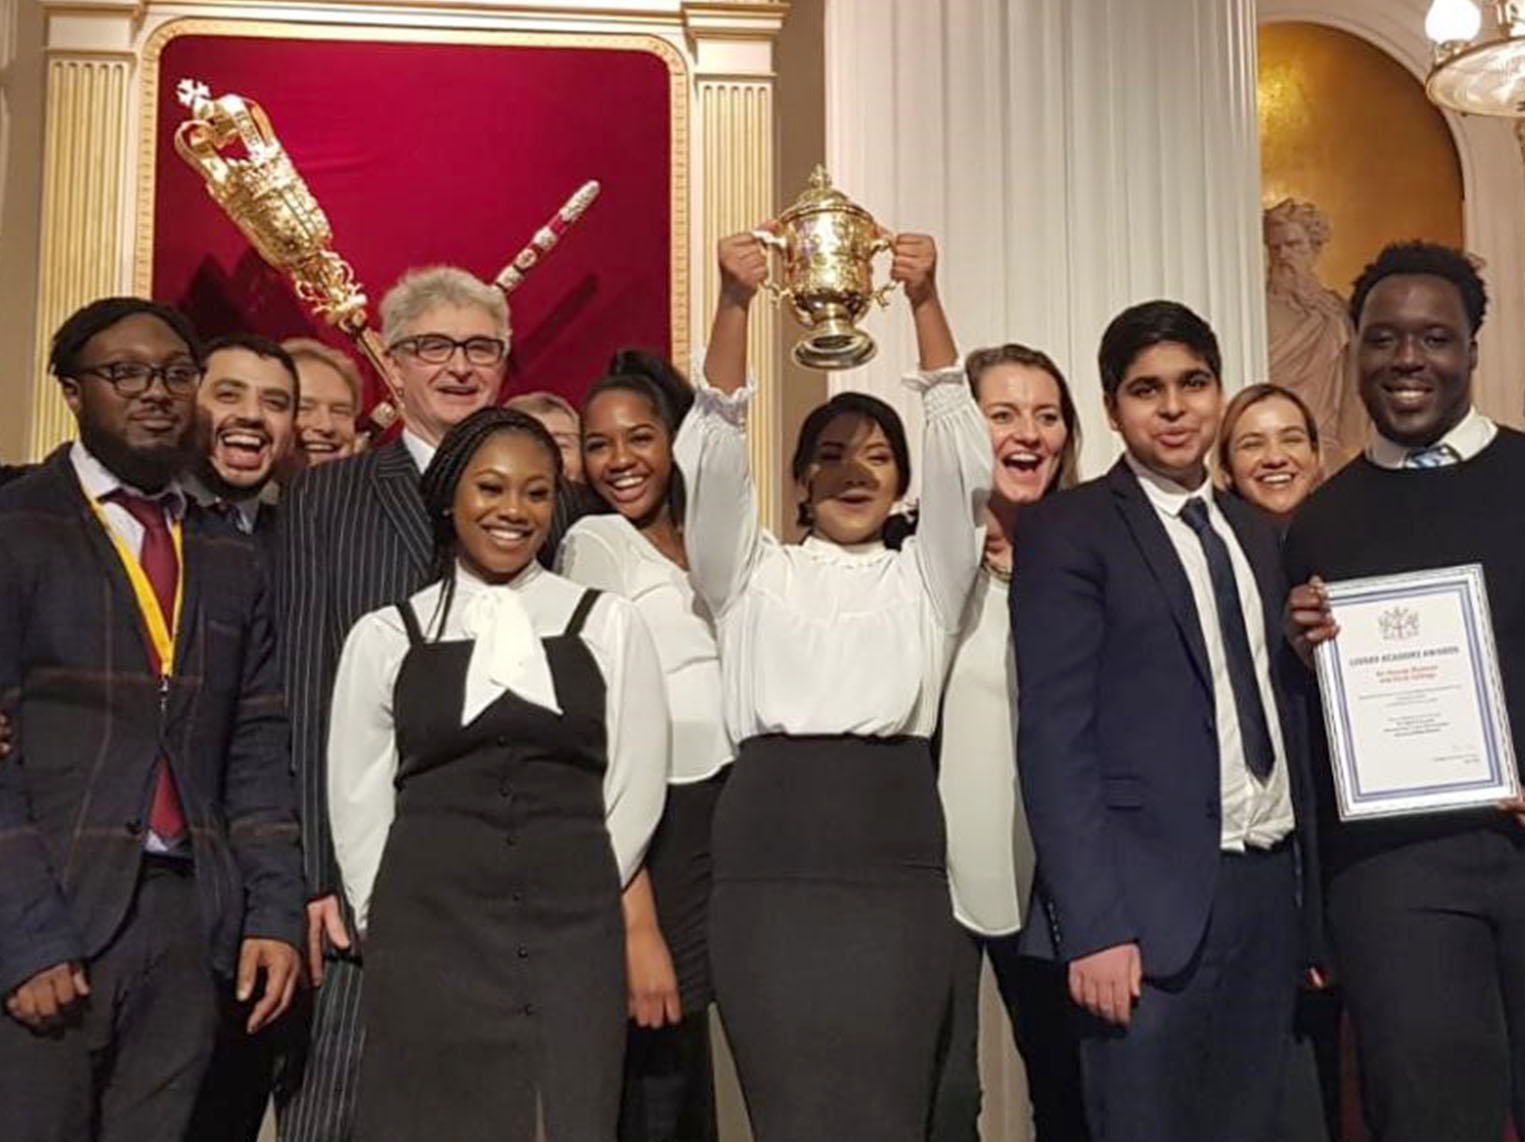 Livery Academy Awards winners 2020